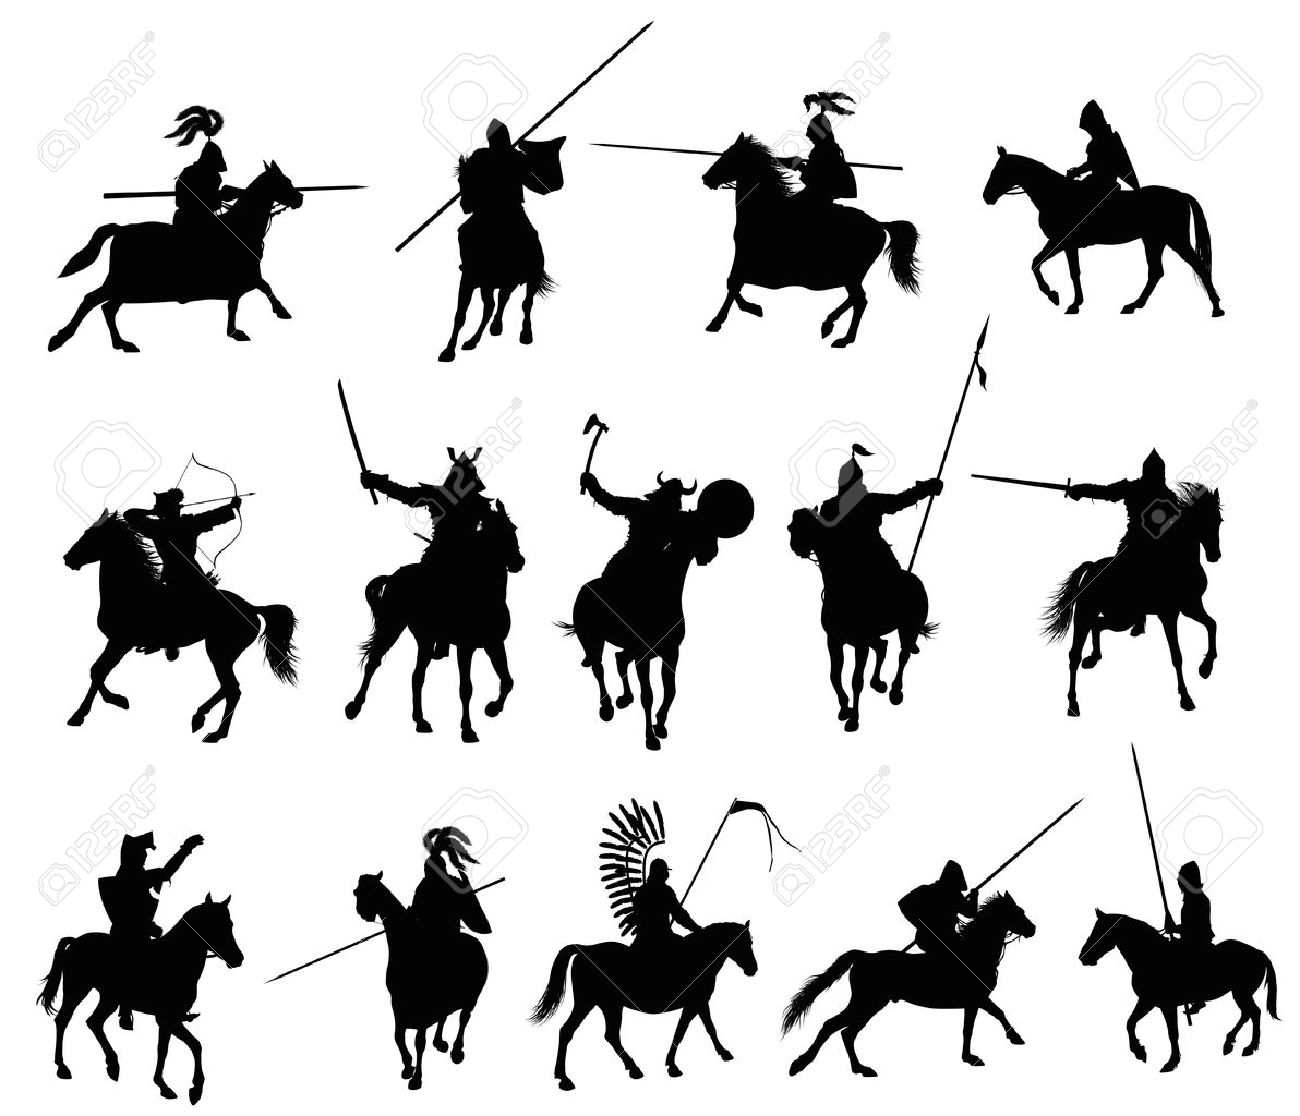 Knights and medieval warriors on horseback detailed silhouettes set Vector - 14634420